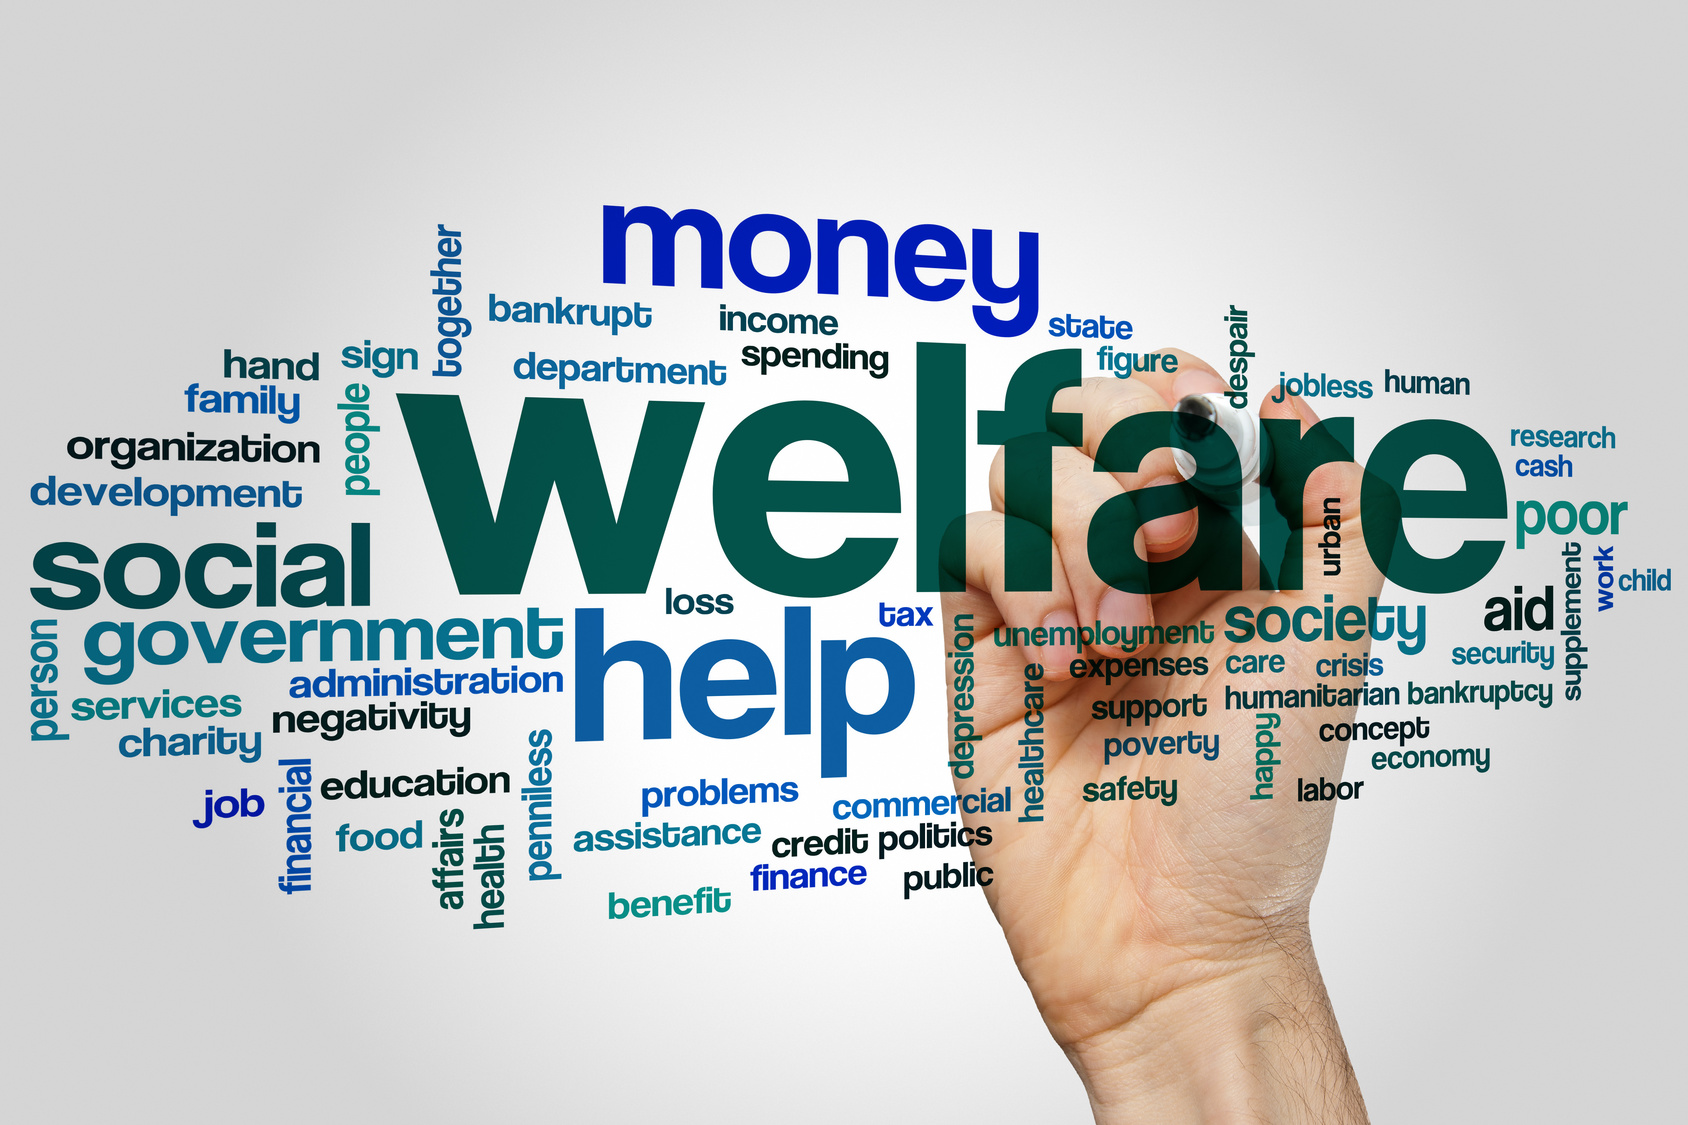 discuss benefits of welfare system in The swedish model: welfare for everyone sweden has developed a social welfare system that has eliminated poverty by providing extensive government benefits to everyone but taxes are high, and some doubt that this so-called swedish model can continue without major changes.